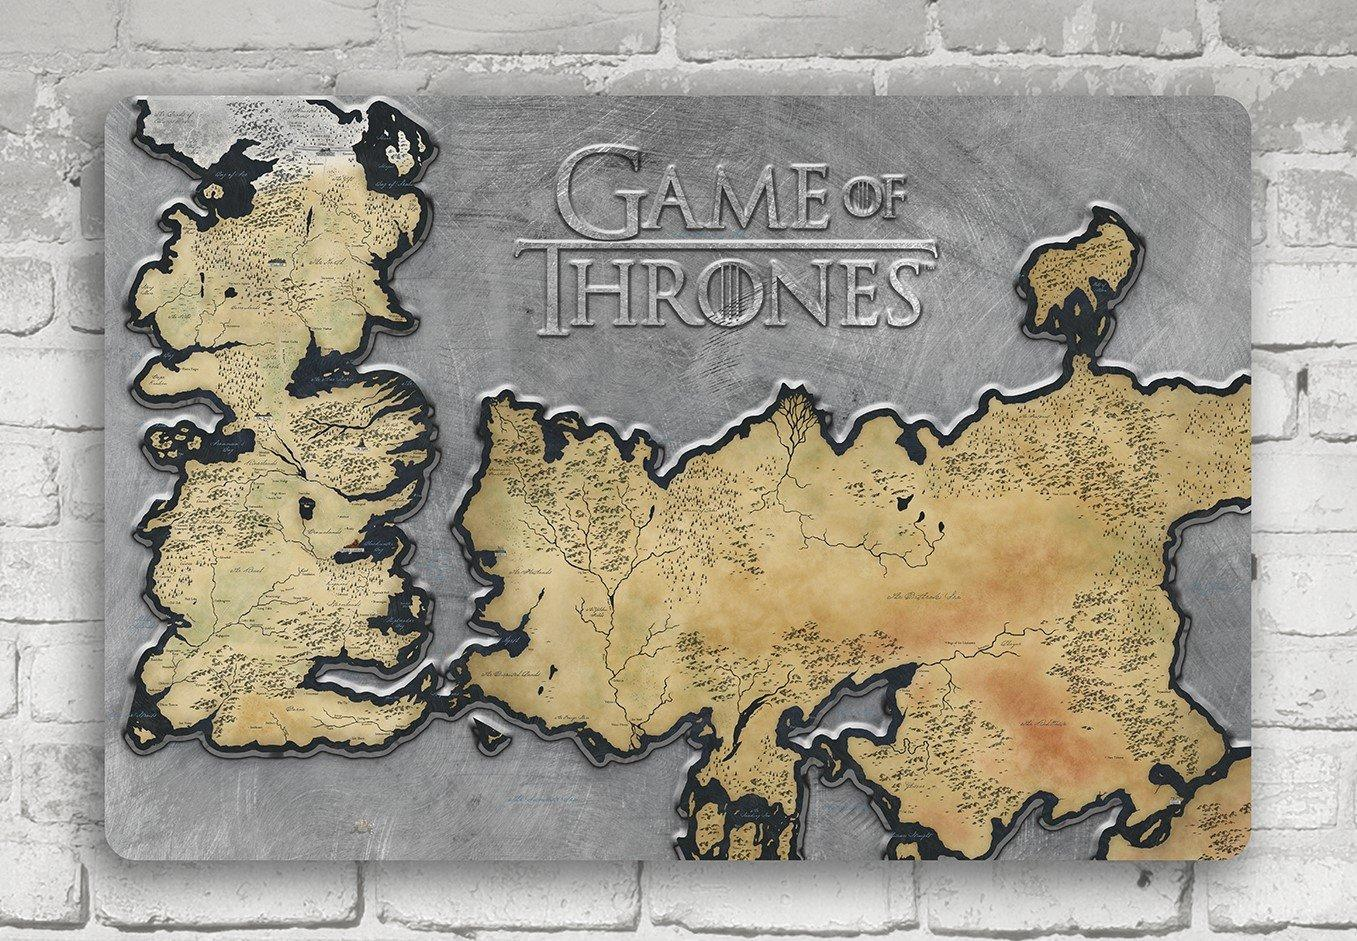 Game of Thrones Westeros Map Wall Art | GameStop Game Of Thrones Wall Map on game of thrones maps hbo, game of thrones win or die, game of thrones white walkers, game of thrones posters, game of thrones globe, game of thrones winter, game of thrones book, game of thrones diagram, game of thrones pins, game of thrones letter, game of thrones castles, game of thrones magazine, game of thrones review, game of thrones kit, game of thrones garden, game of thrones hardcover, game of thrones table, game of thrones wildlings, game of thrones war, game of thrones maps pdf,